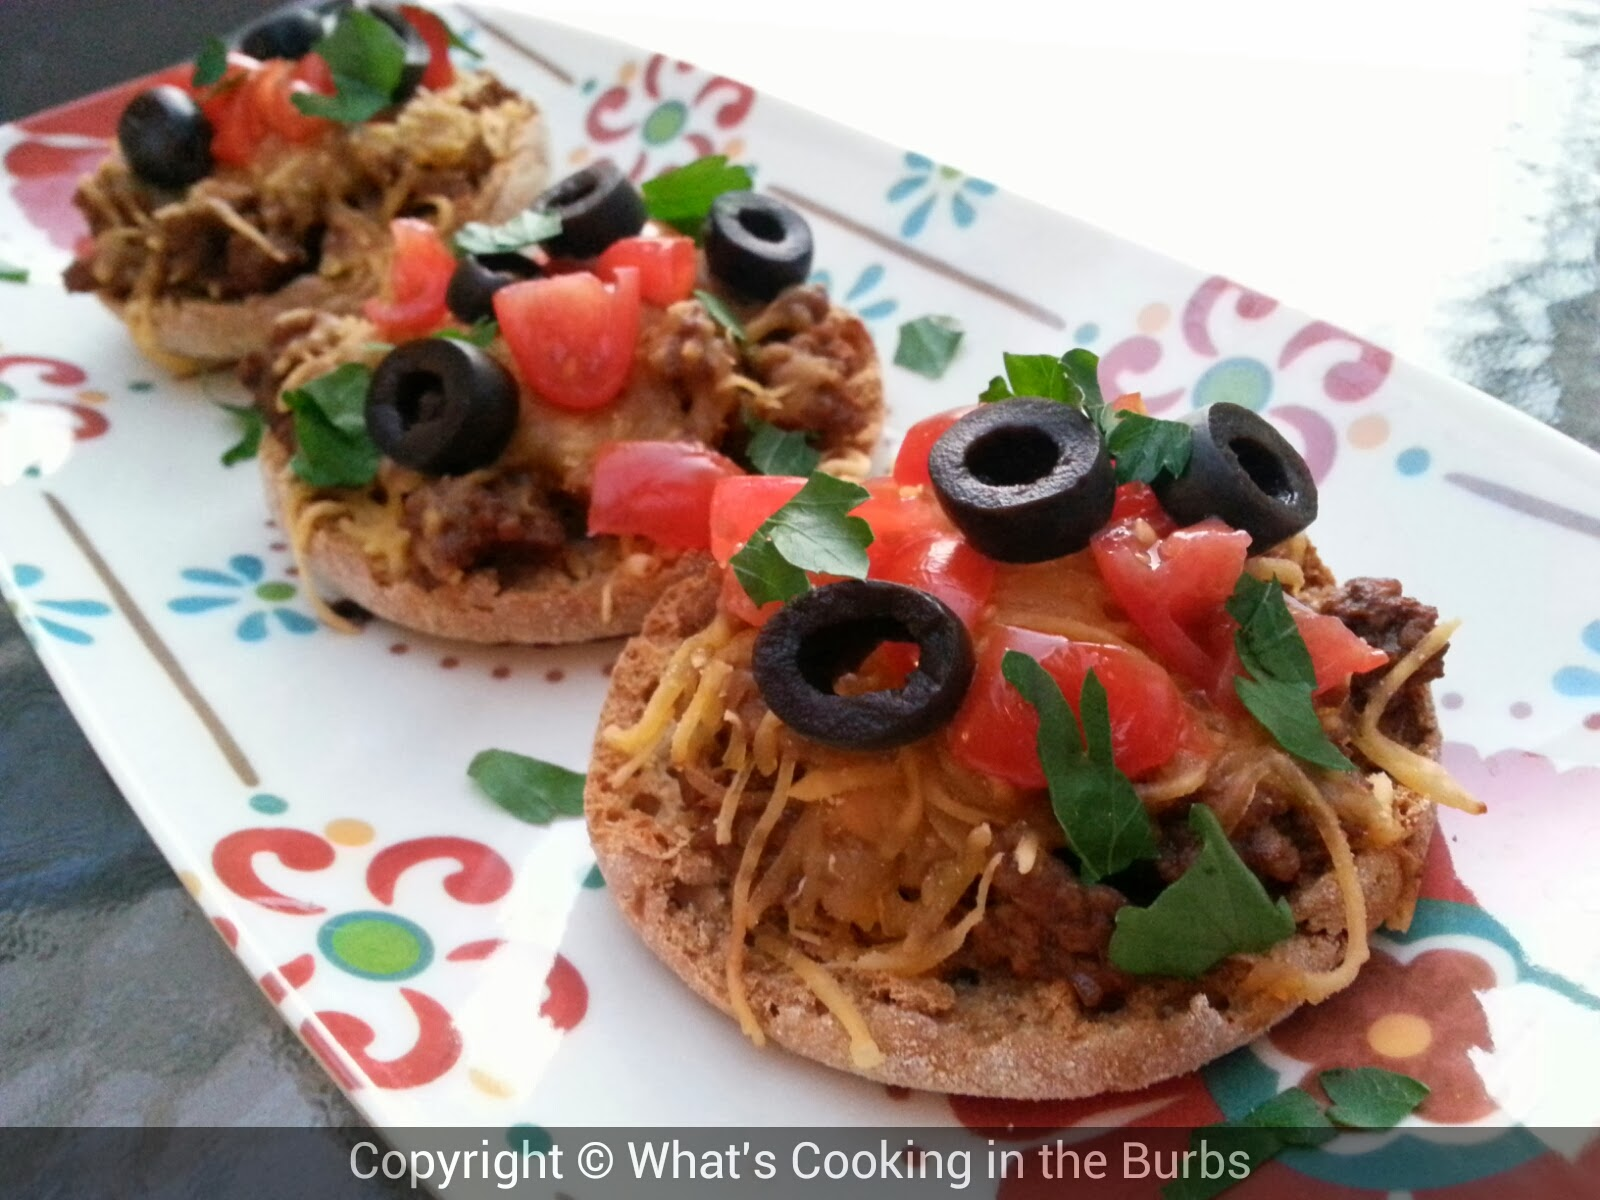 What's Cooking in the Burbs: Mini Mexican Pizzas